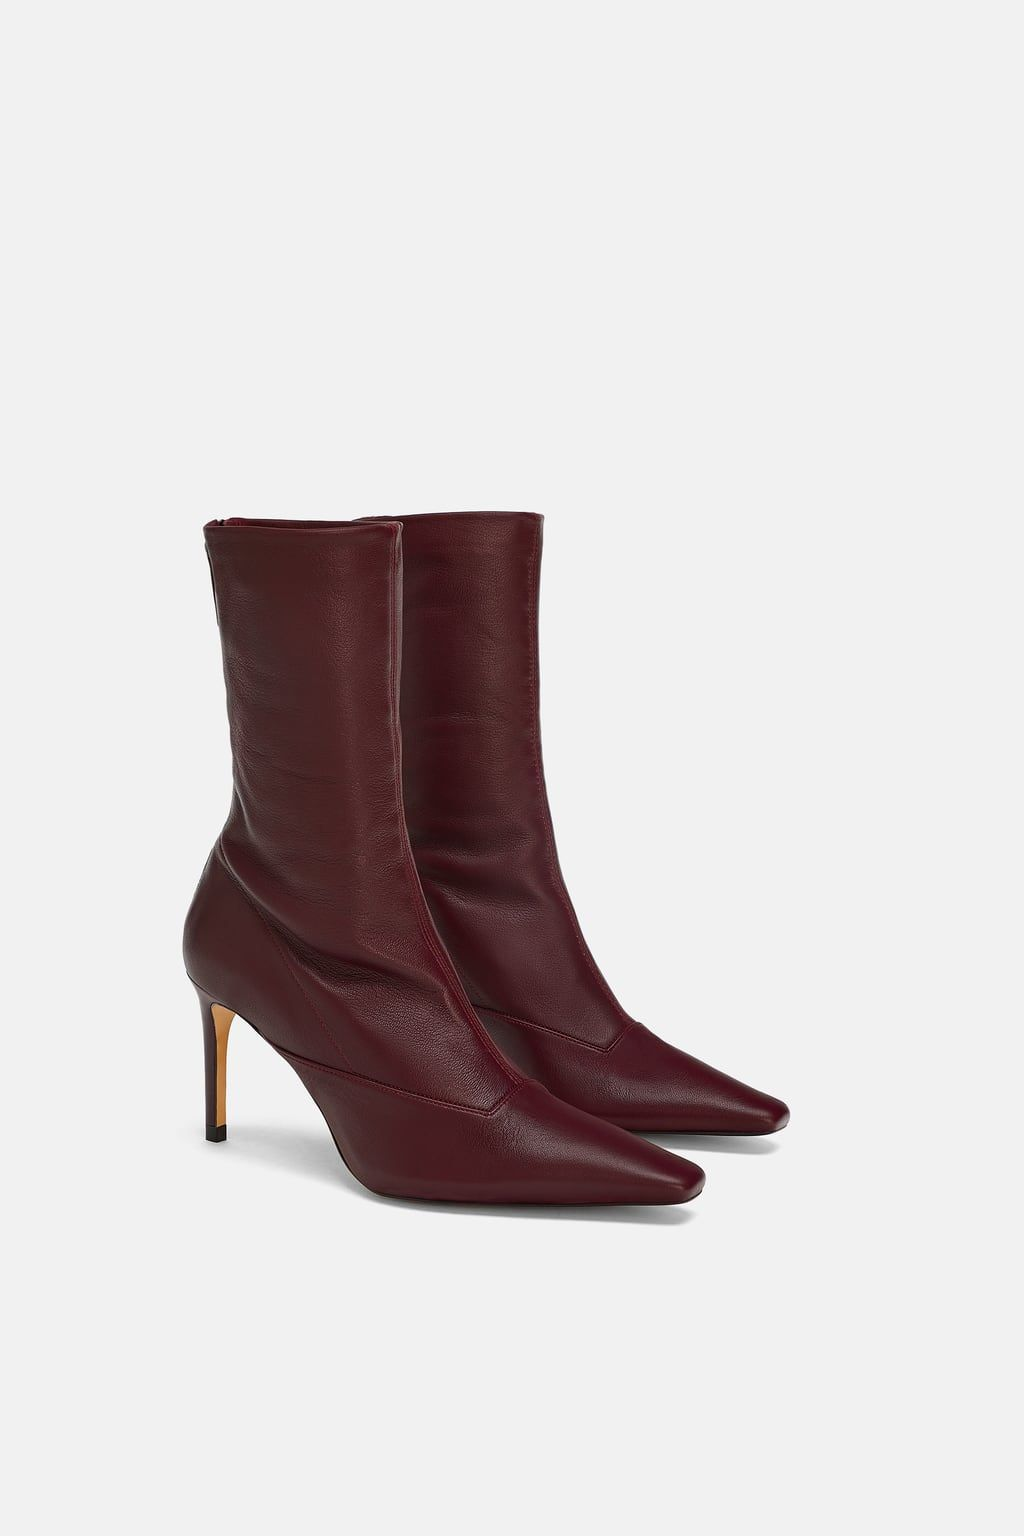 bda17597f998f Image 3 of LEATHER HEELED ANKLE BOOTS from Zara